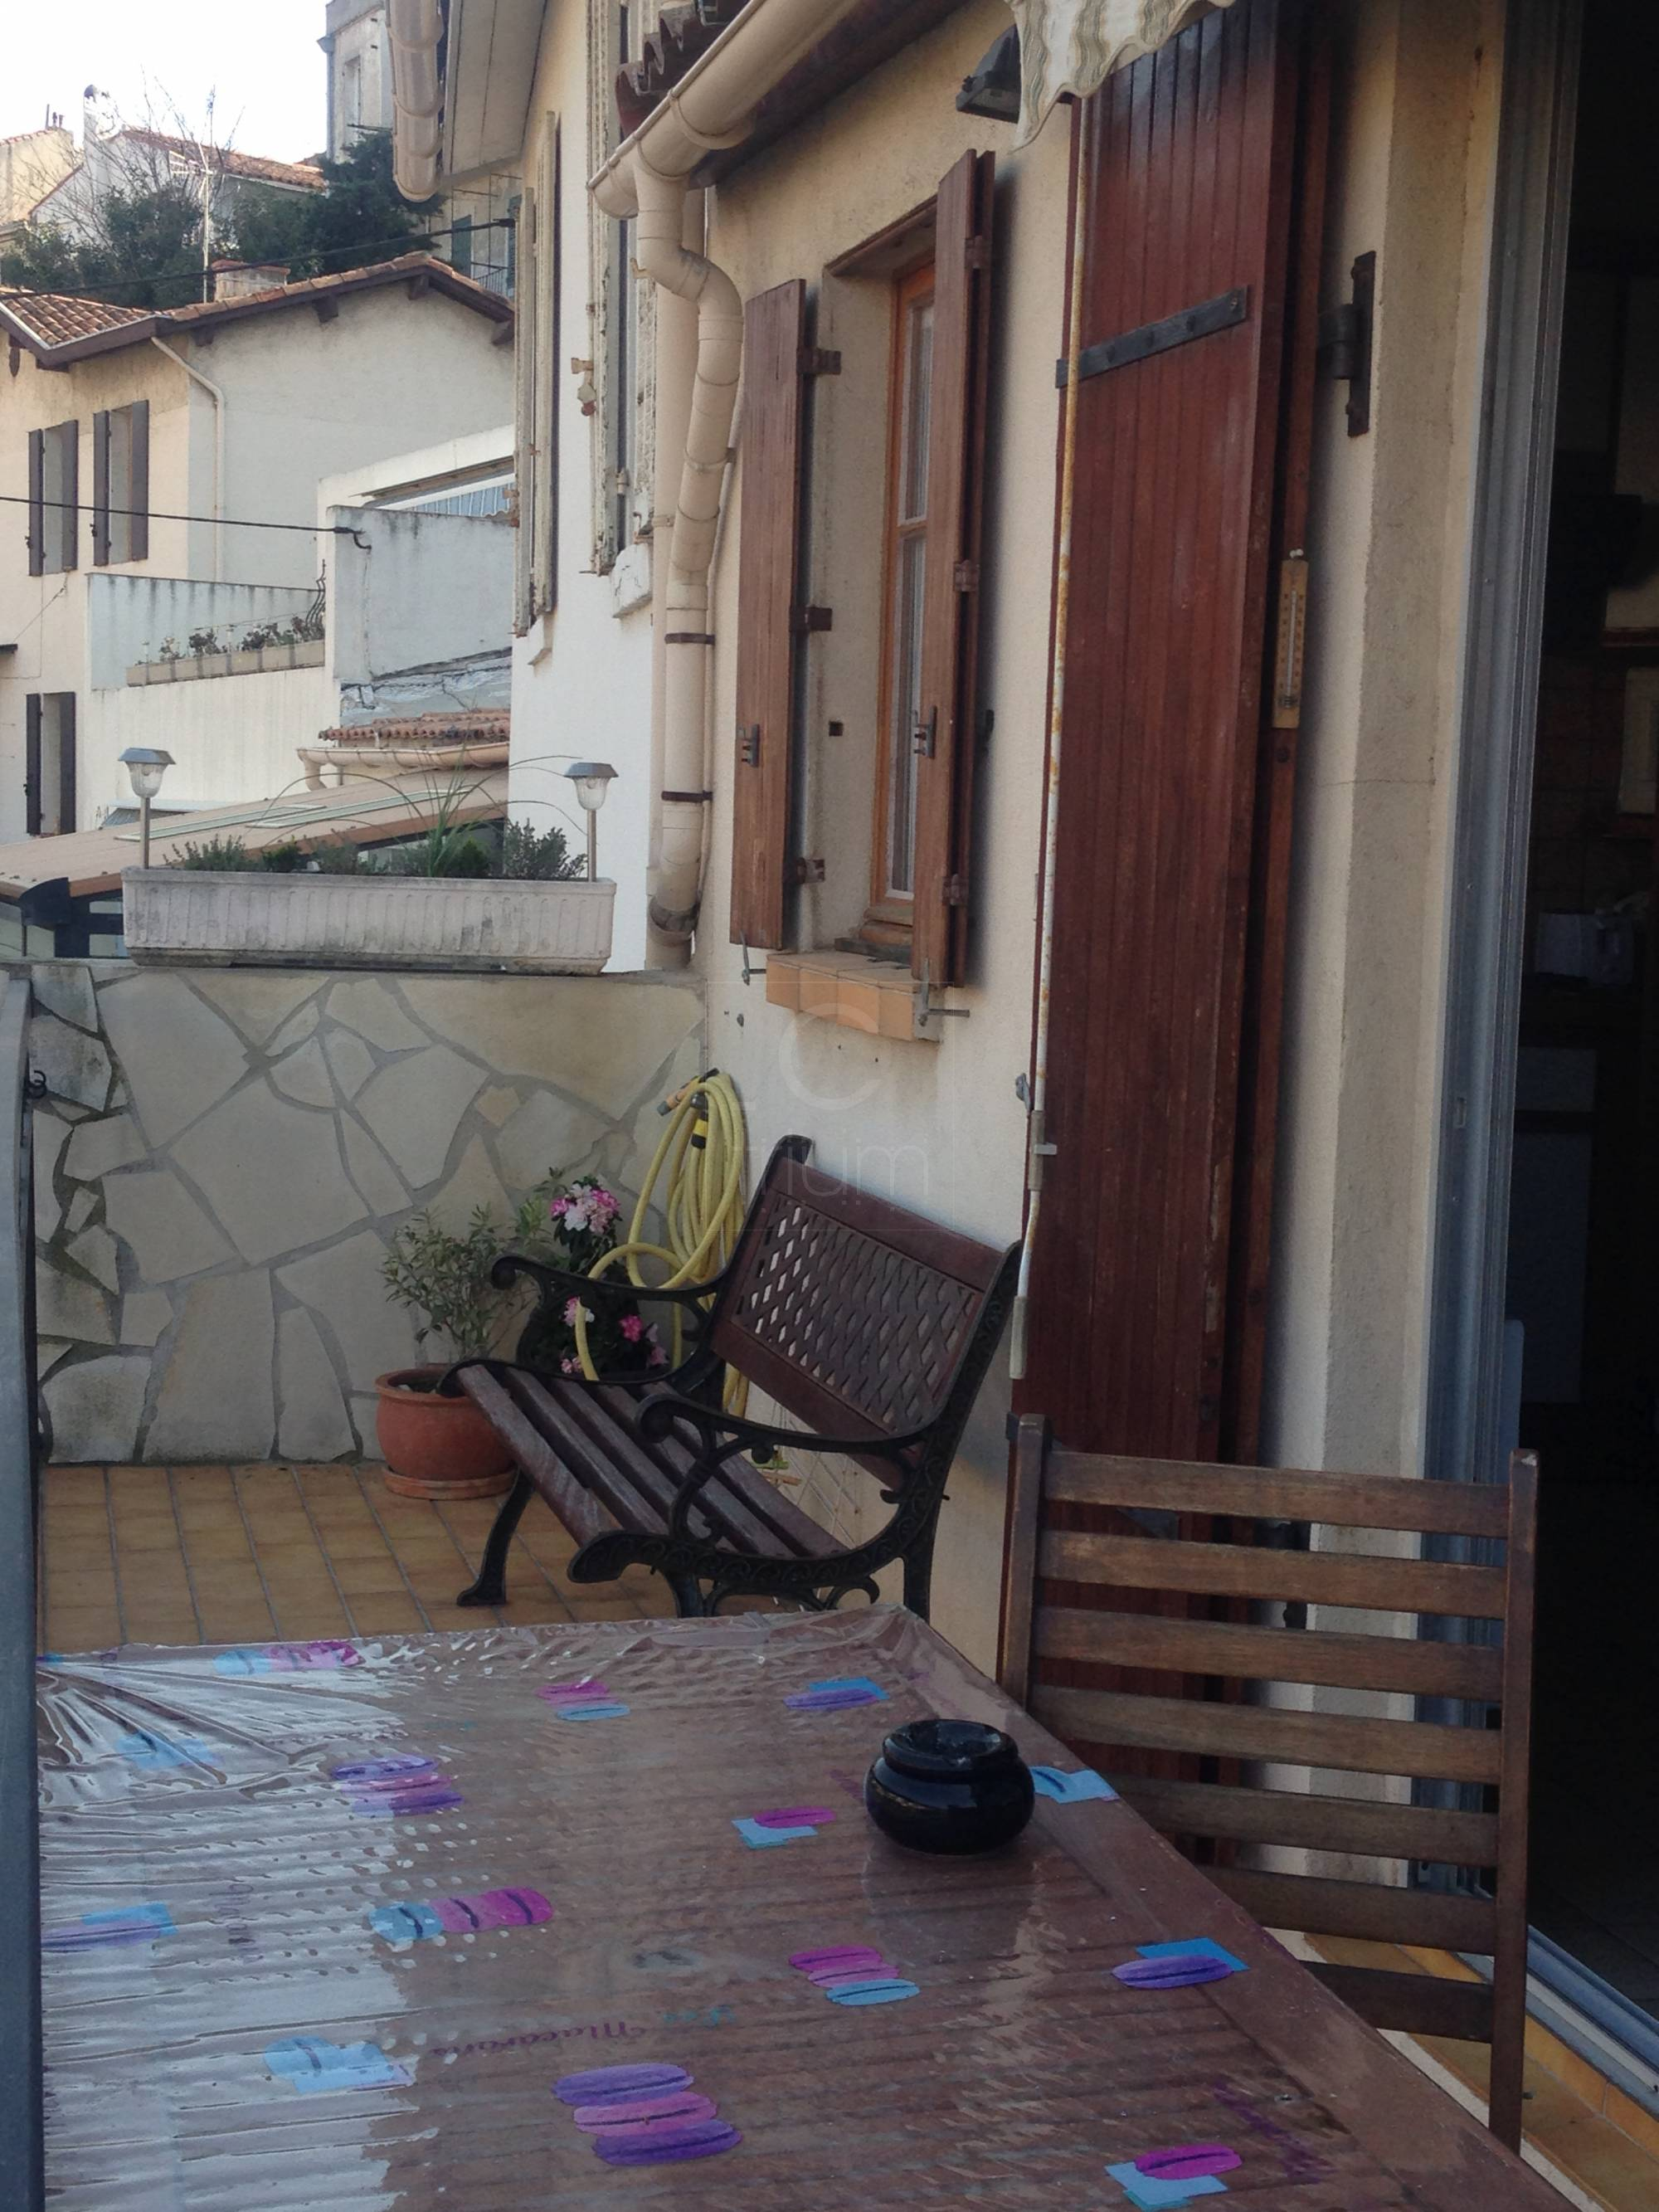 Vente appartement t2 f2 marseille 7eme endoume terrasse for T2 marseille terrasse